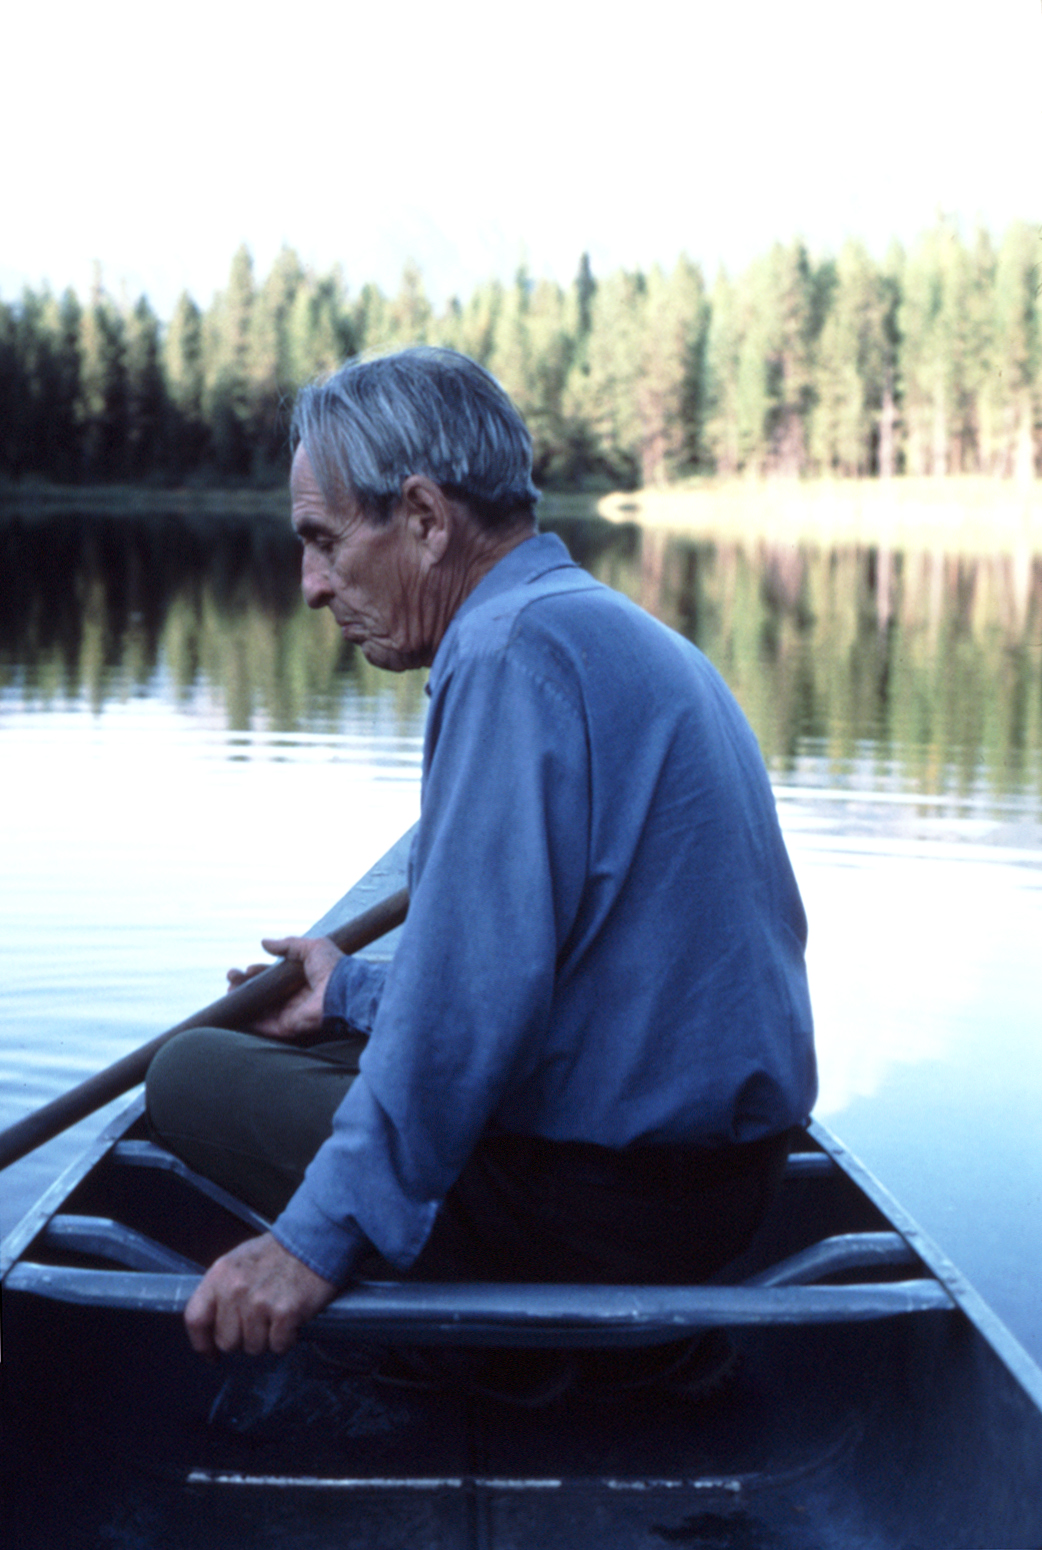 Norman Maclean. Photo by VERONICA WALD.